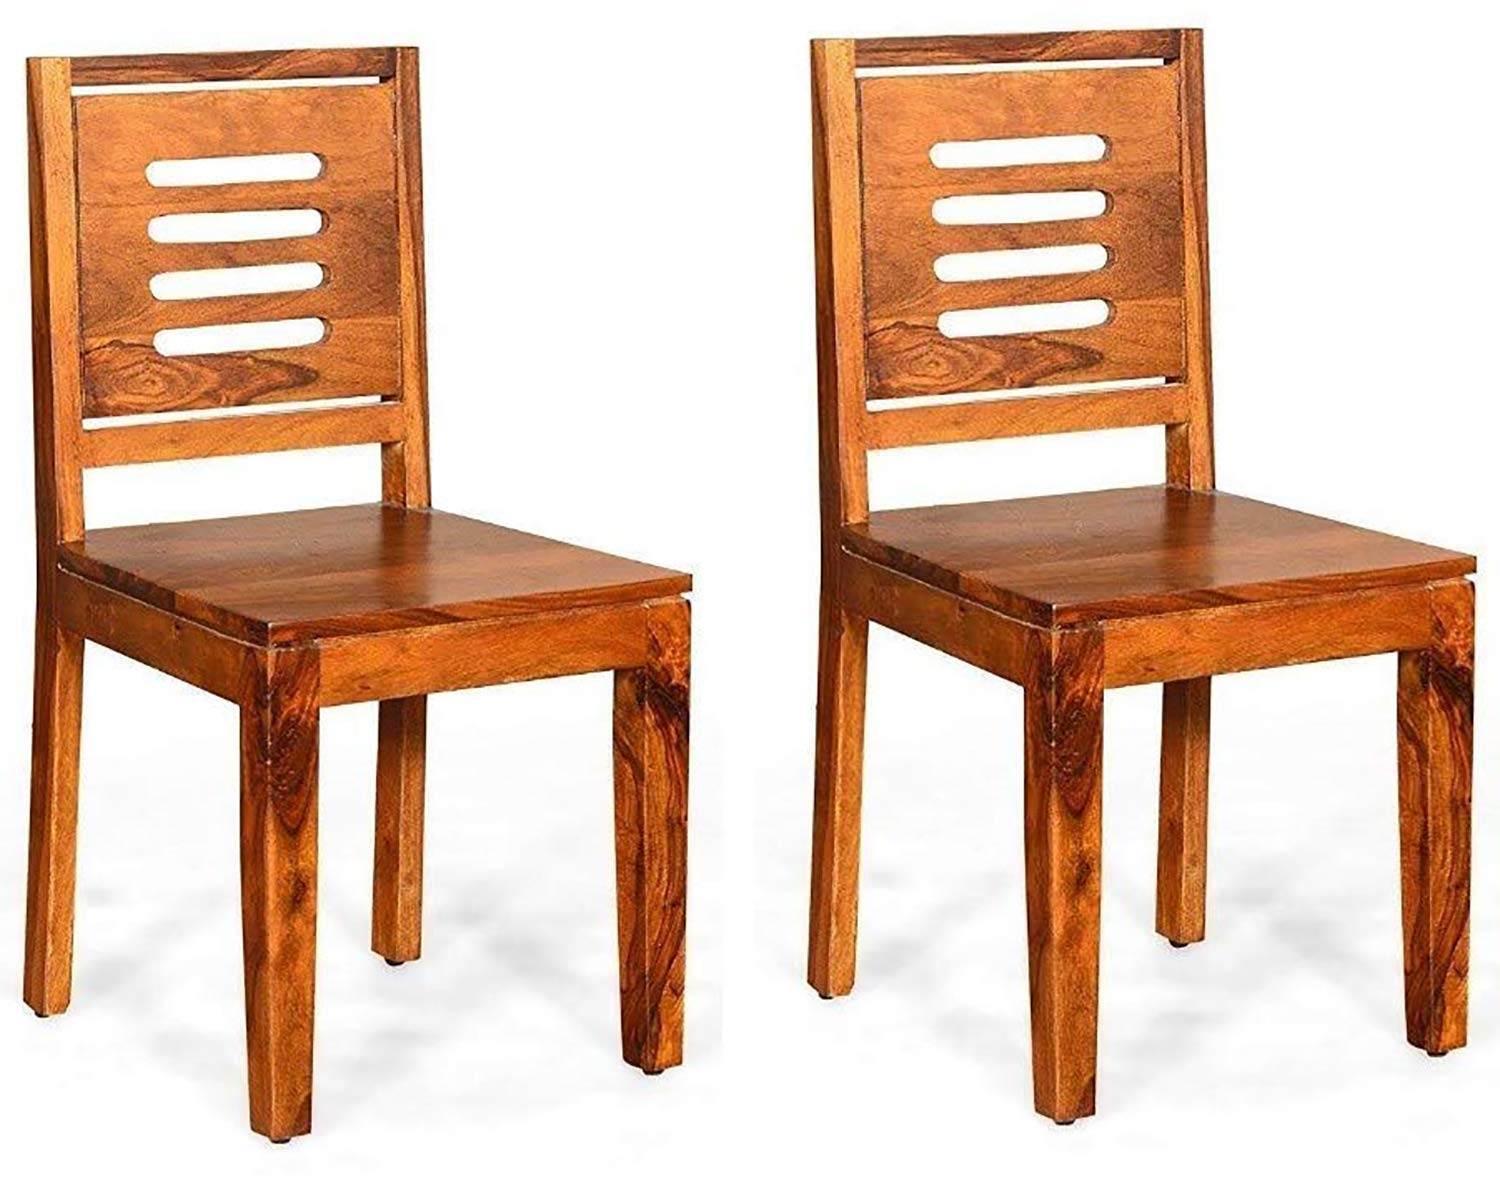 Bushzis Wooden Study Dining Chair Set of 2 for Home